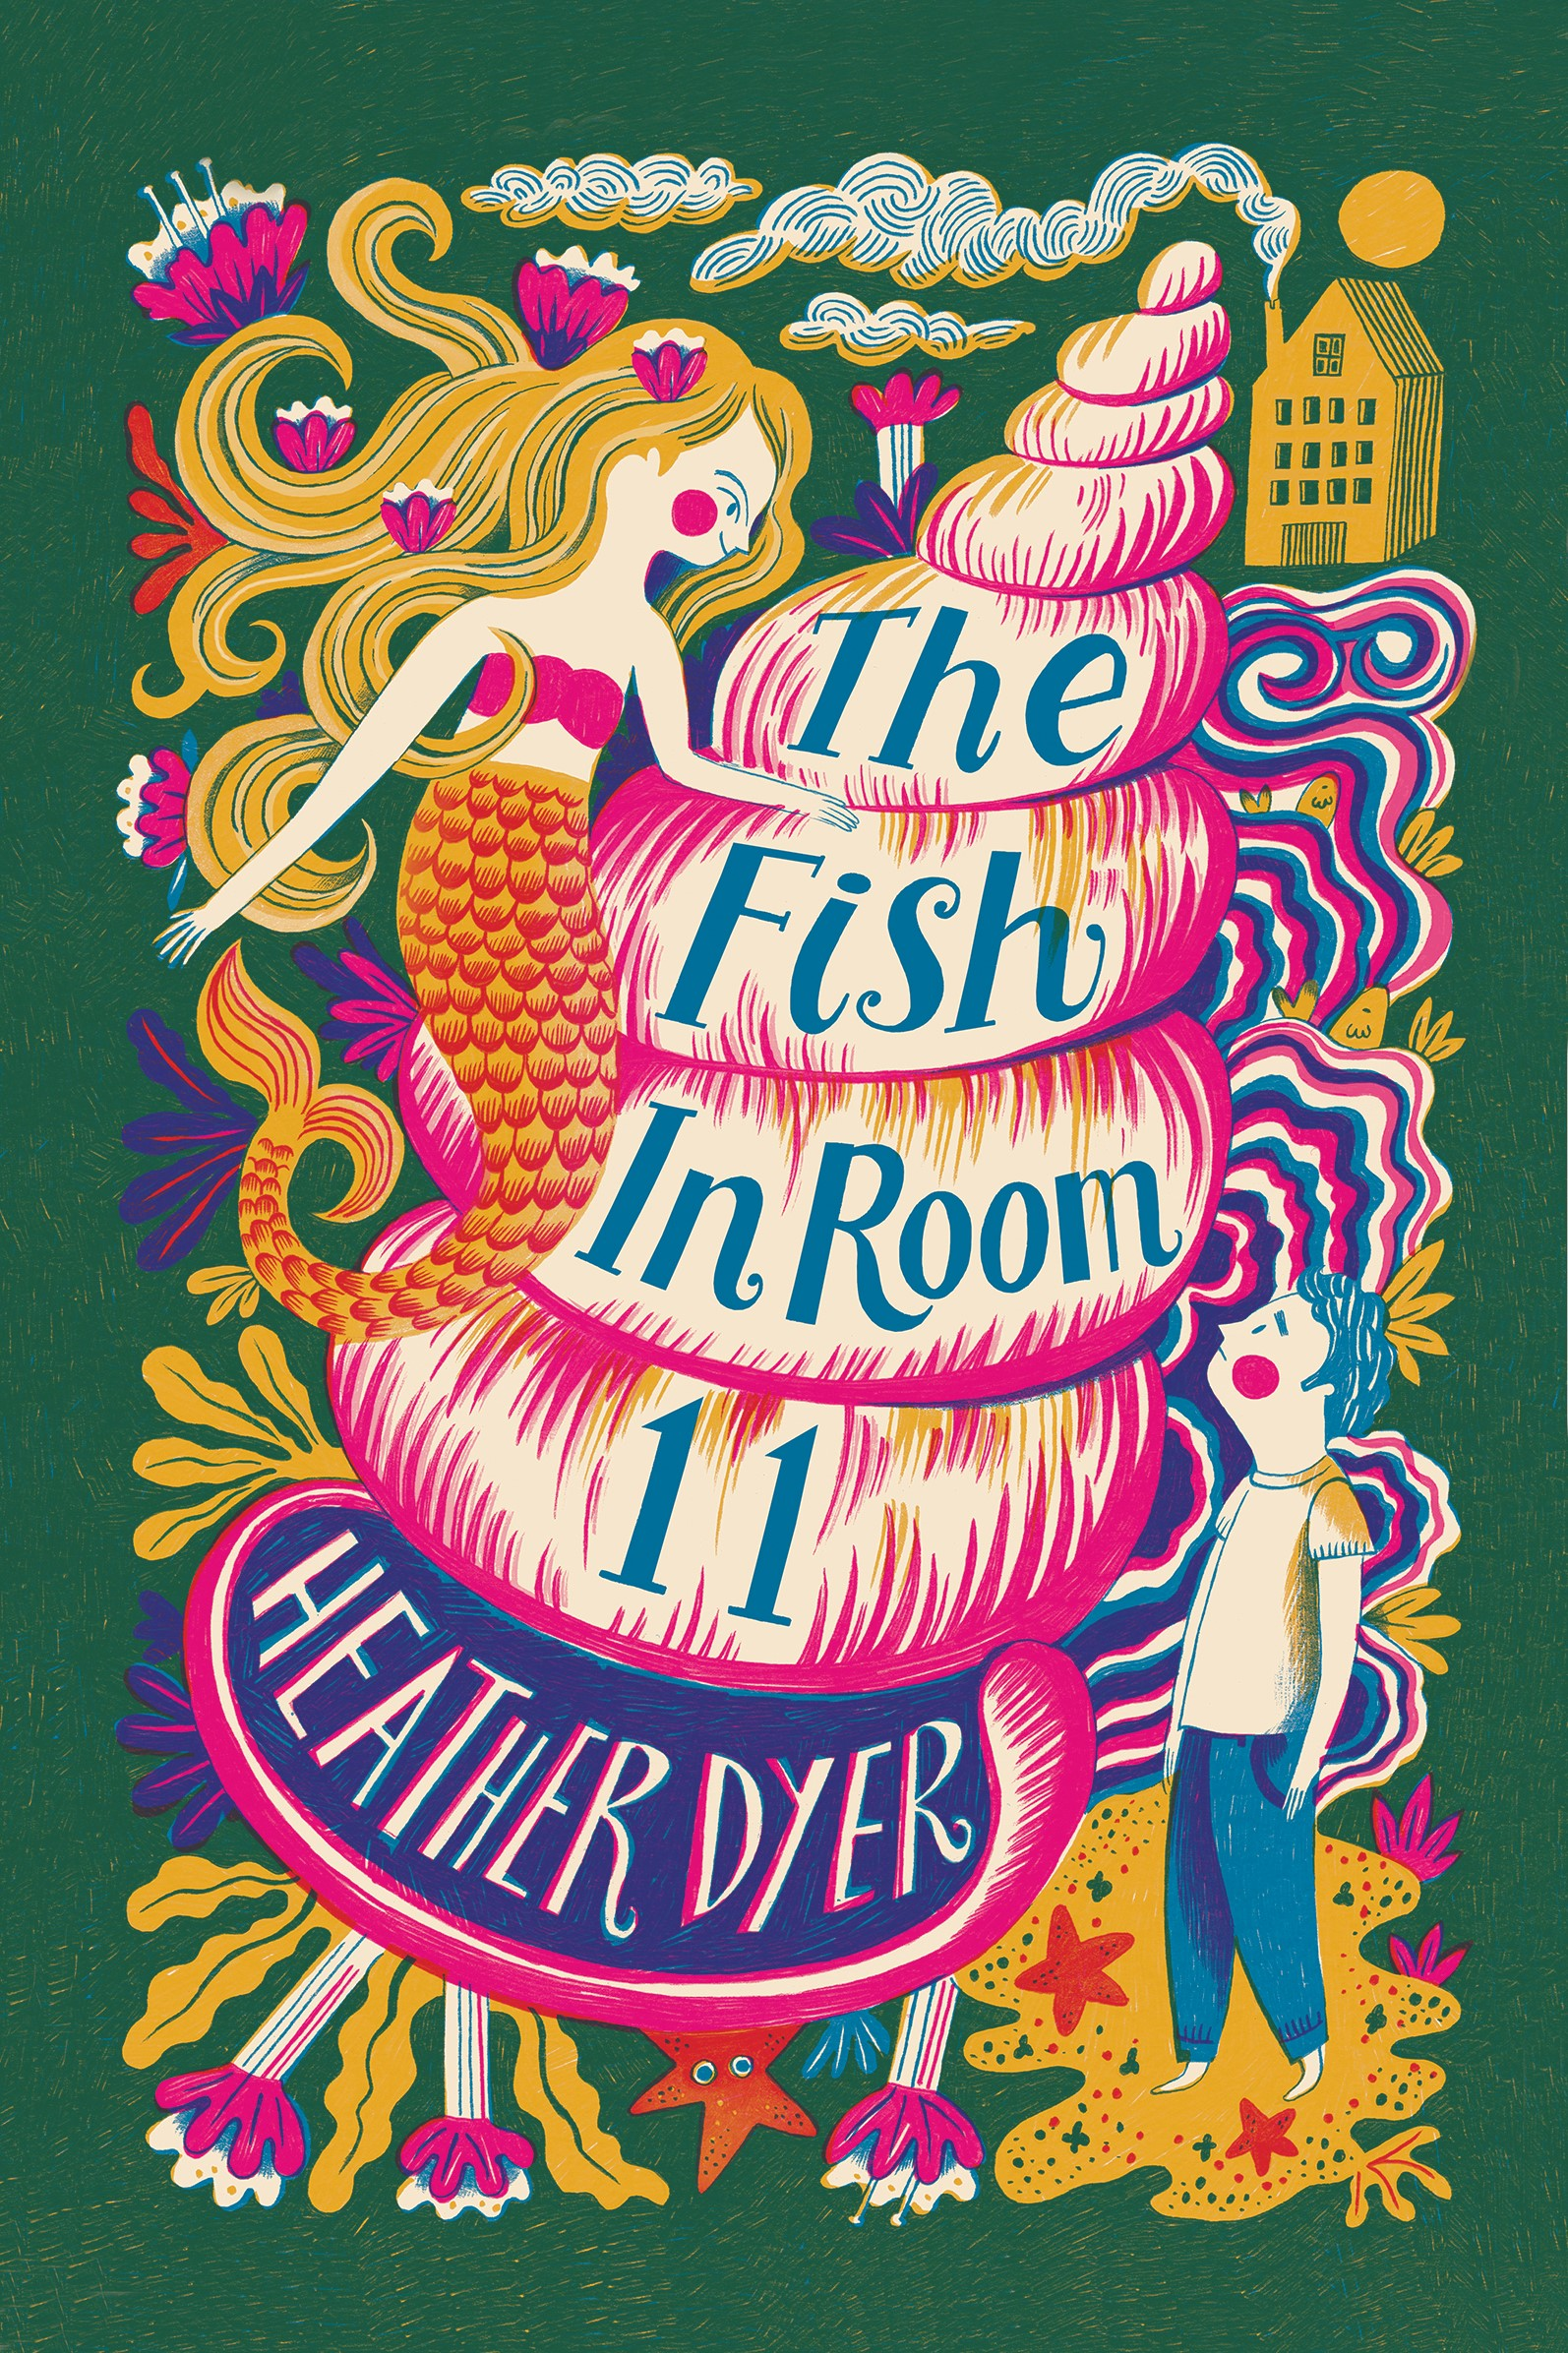 Chicken house books fish in room 11 for 99 5 the fish